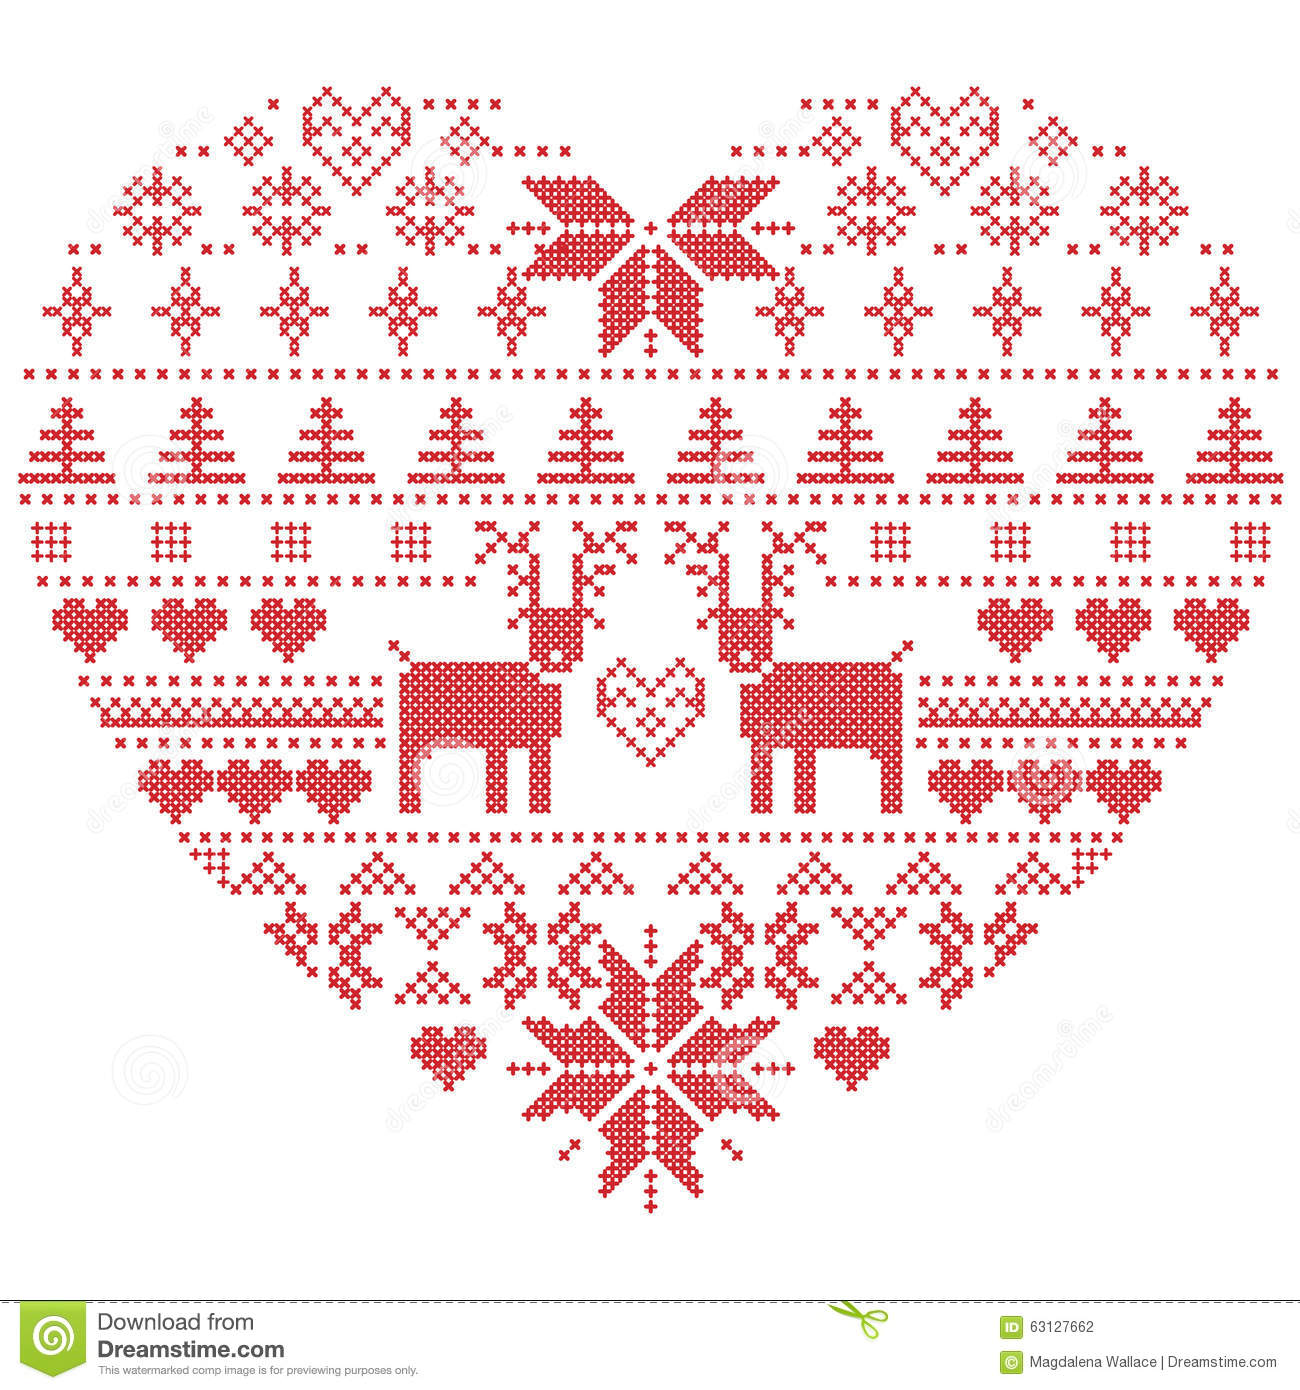 Knitting Heart Stitch Pattern : Scandinavian Nordic Winter Stitch, Knitting Christmas Pattern In In Heart Sha...